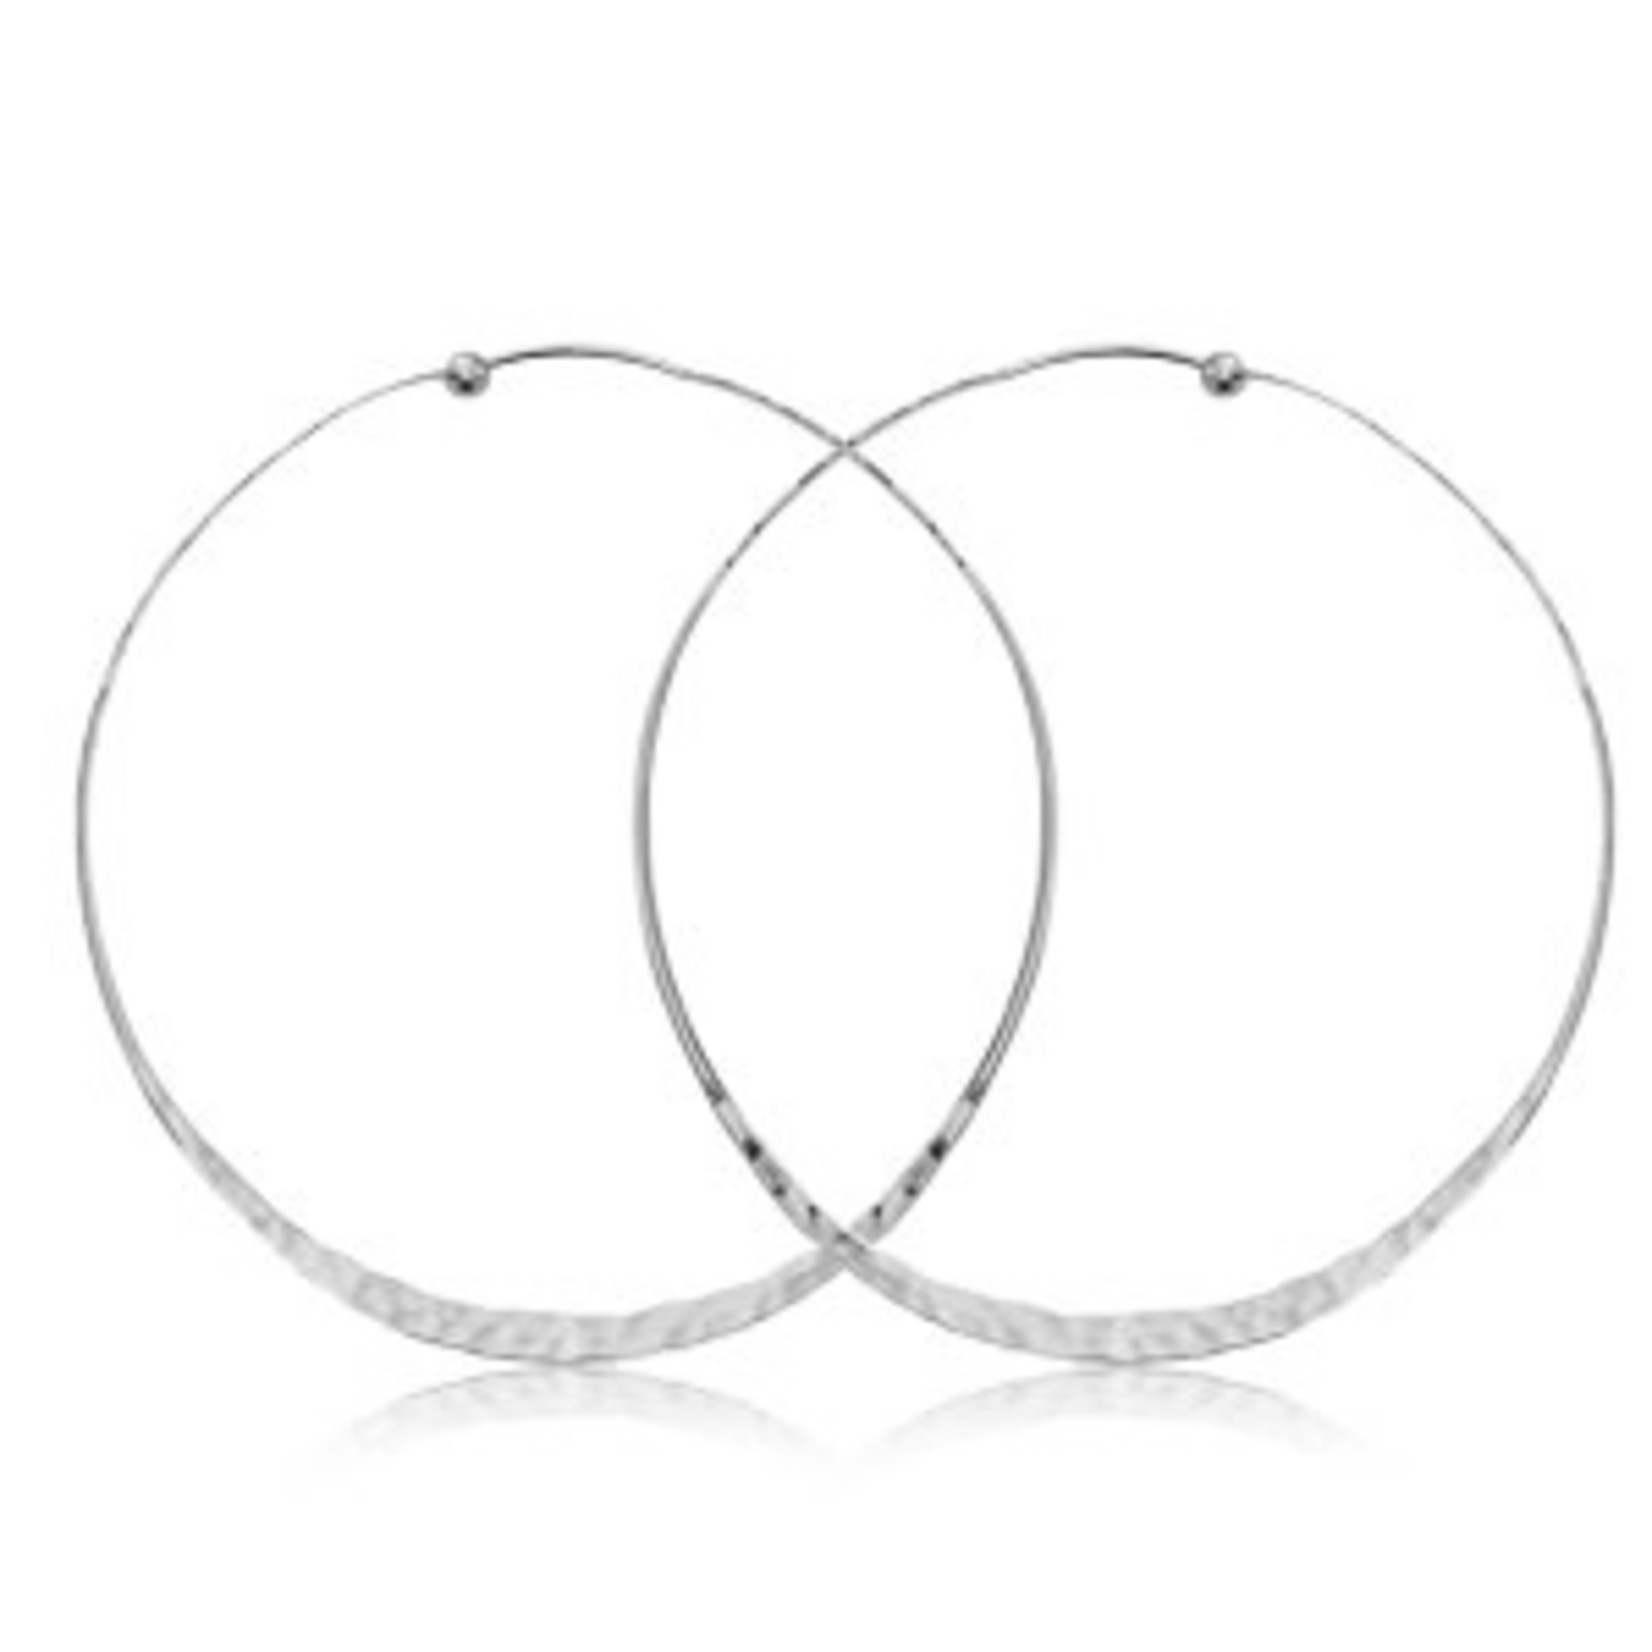 Silver Hammered Twisted XL Hoop Earring